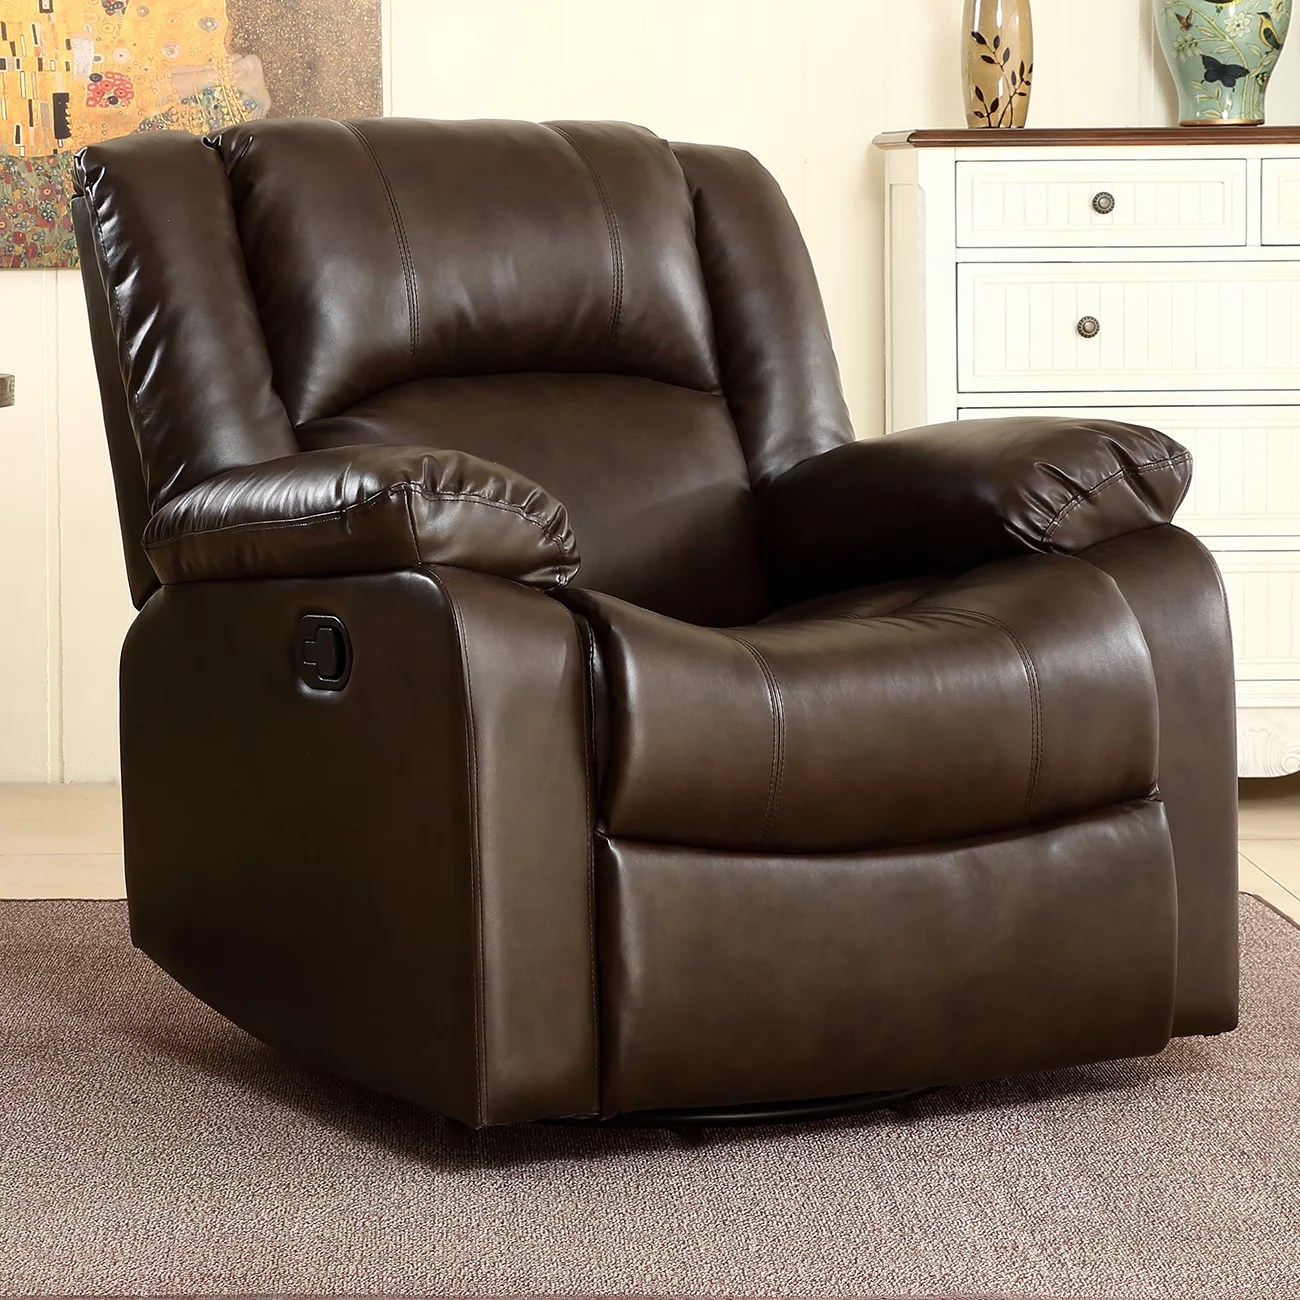 Swivel Living Room Chairs Belleze Faux Leather Rocker Swivel Glider Recliner Living Room Chair Brown